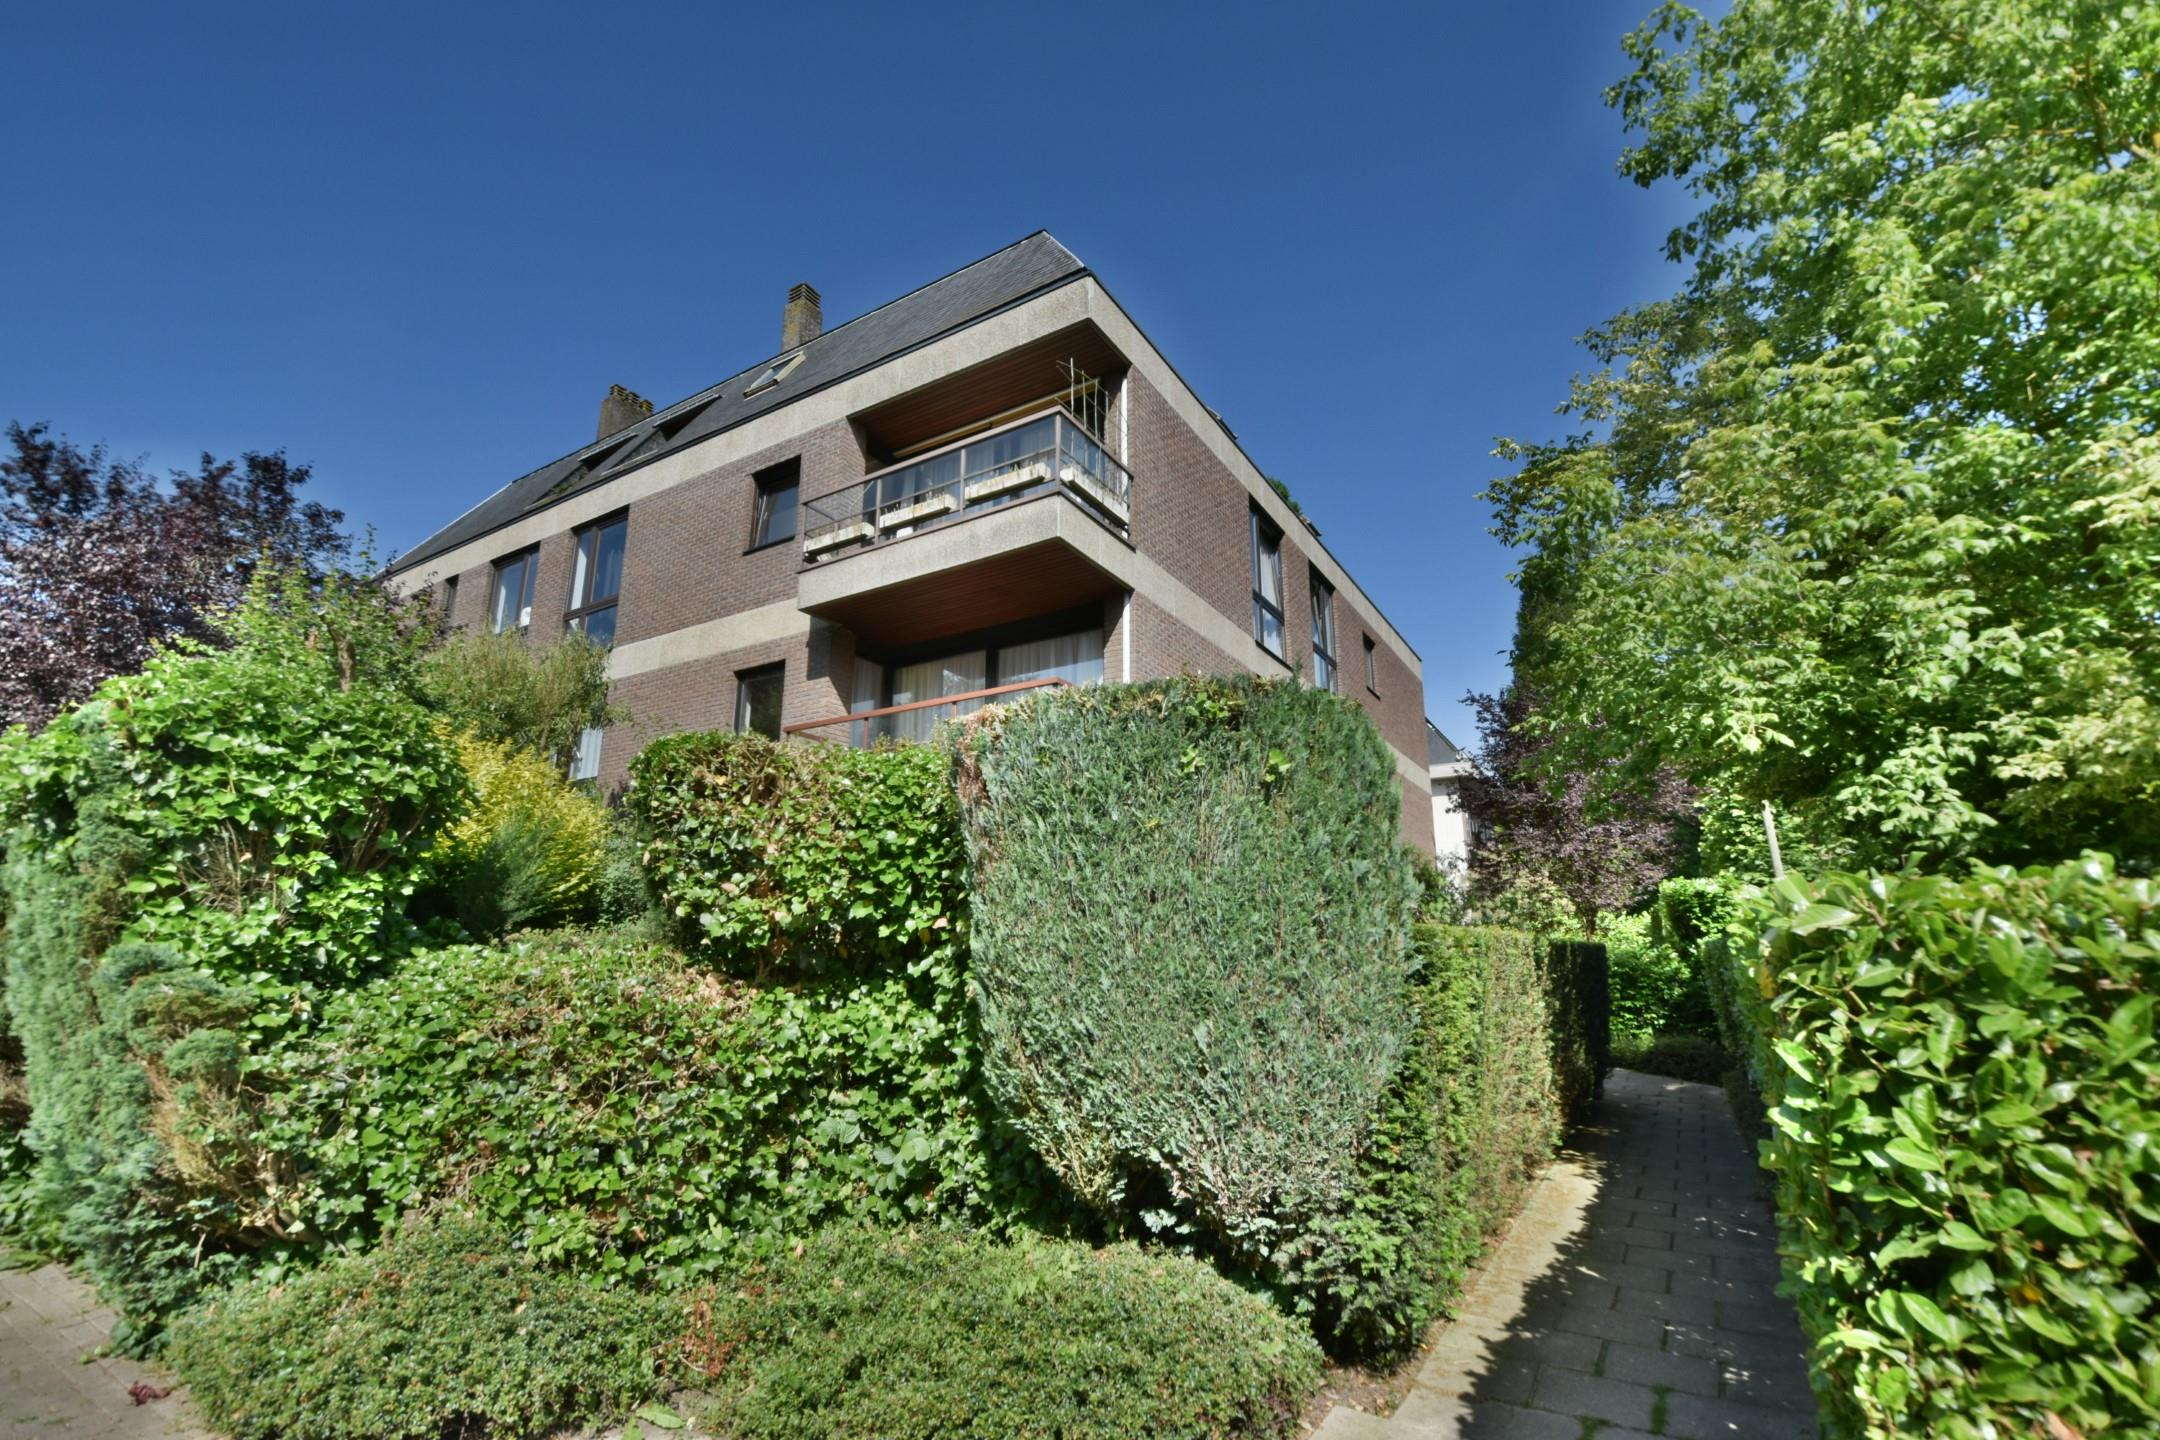 Immo FERCO - APPARTEMENT - WOLUWE-SAINT-PIERRE - #3860336-7